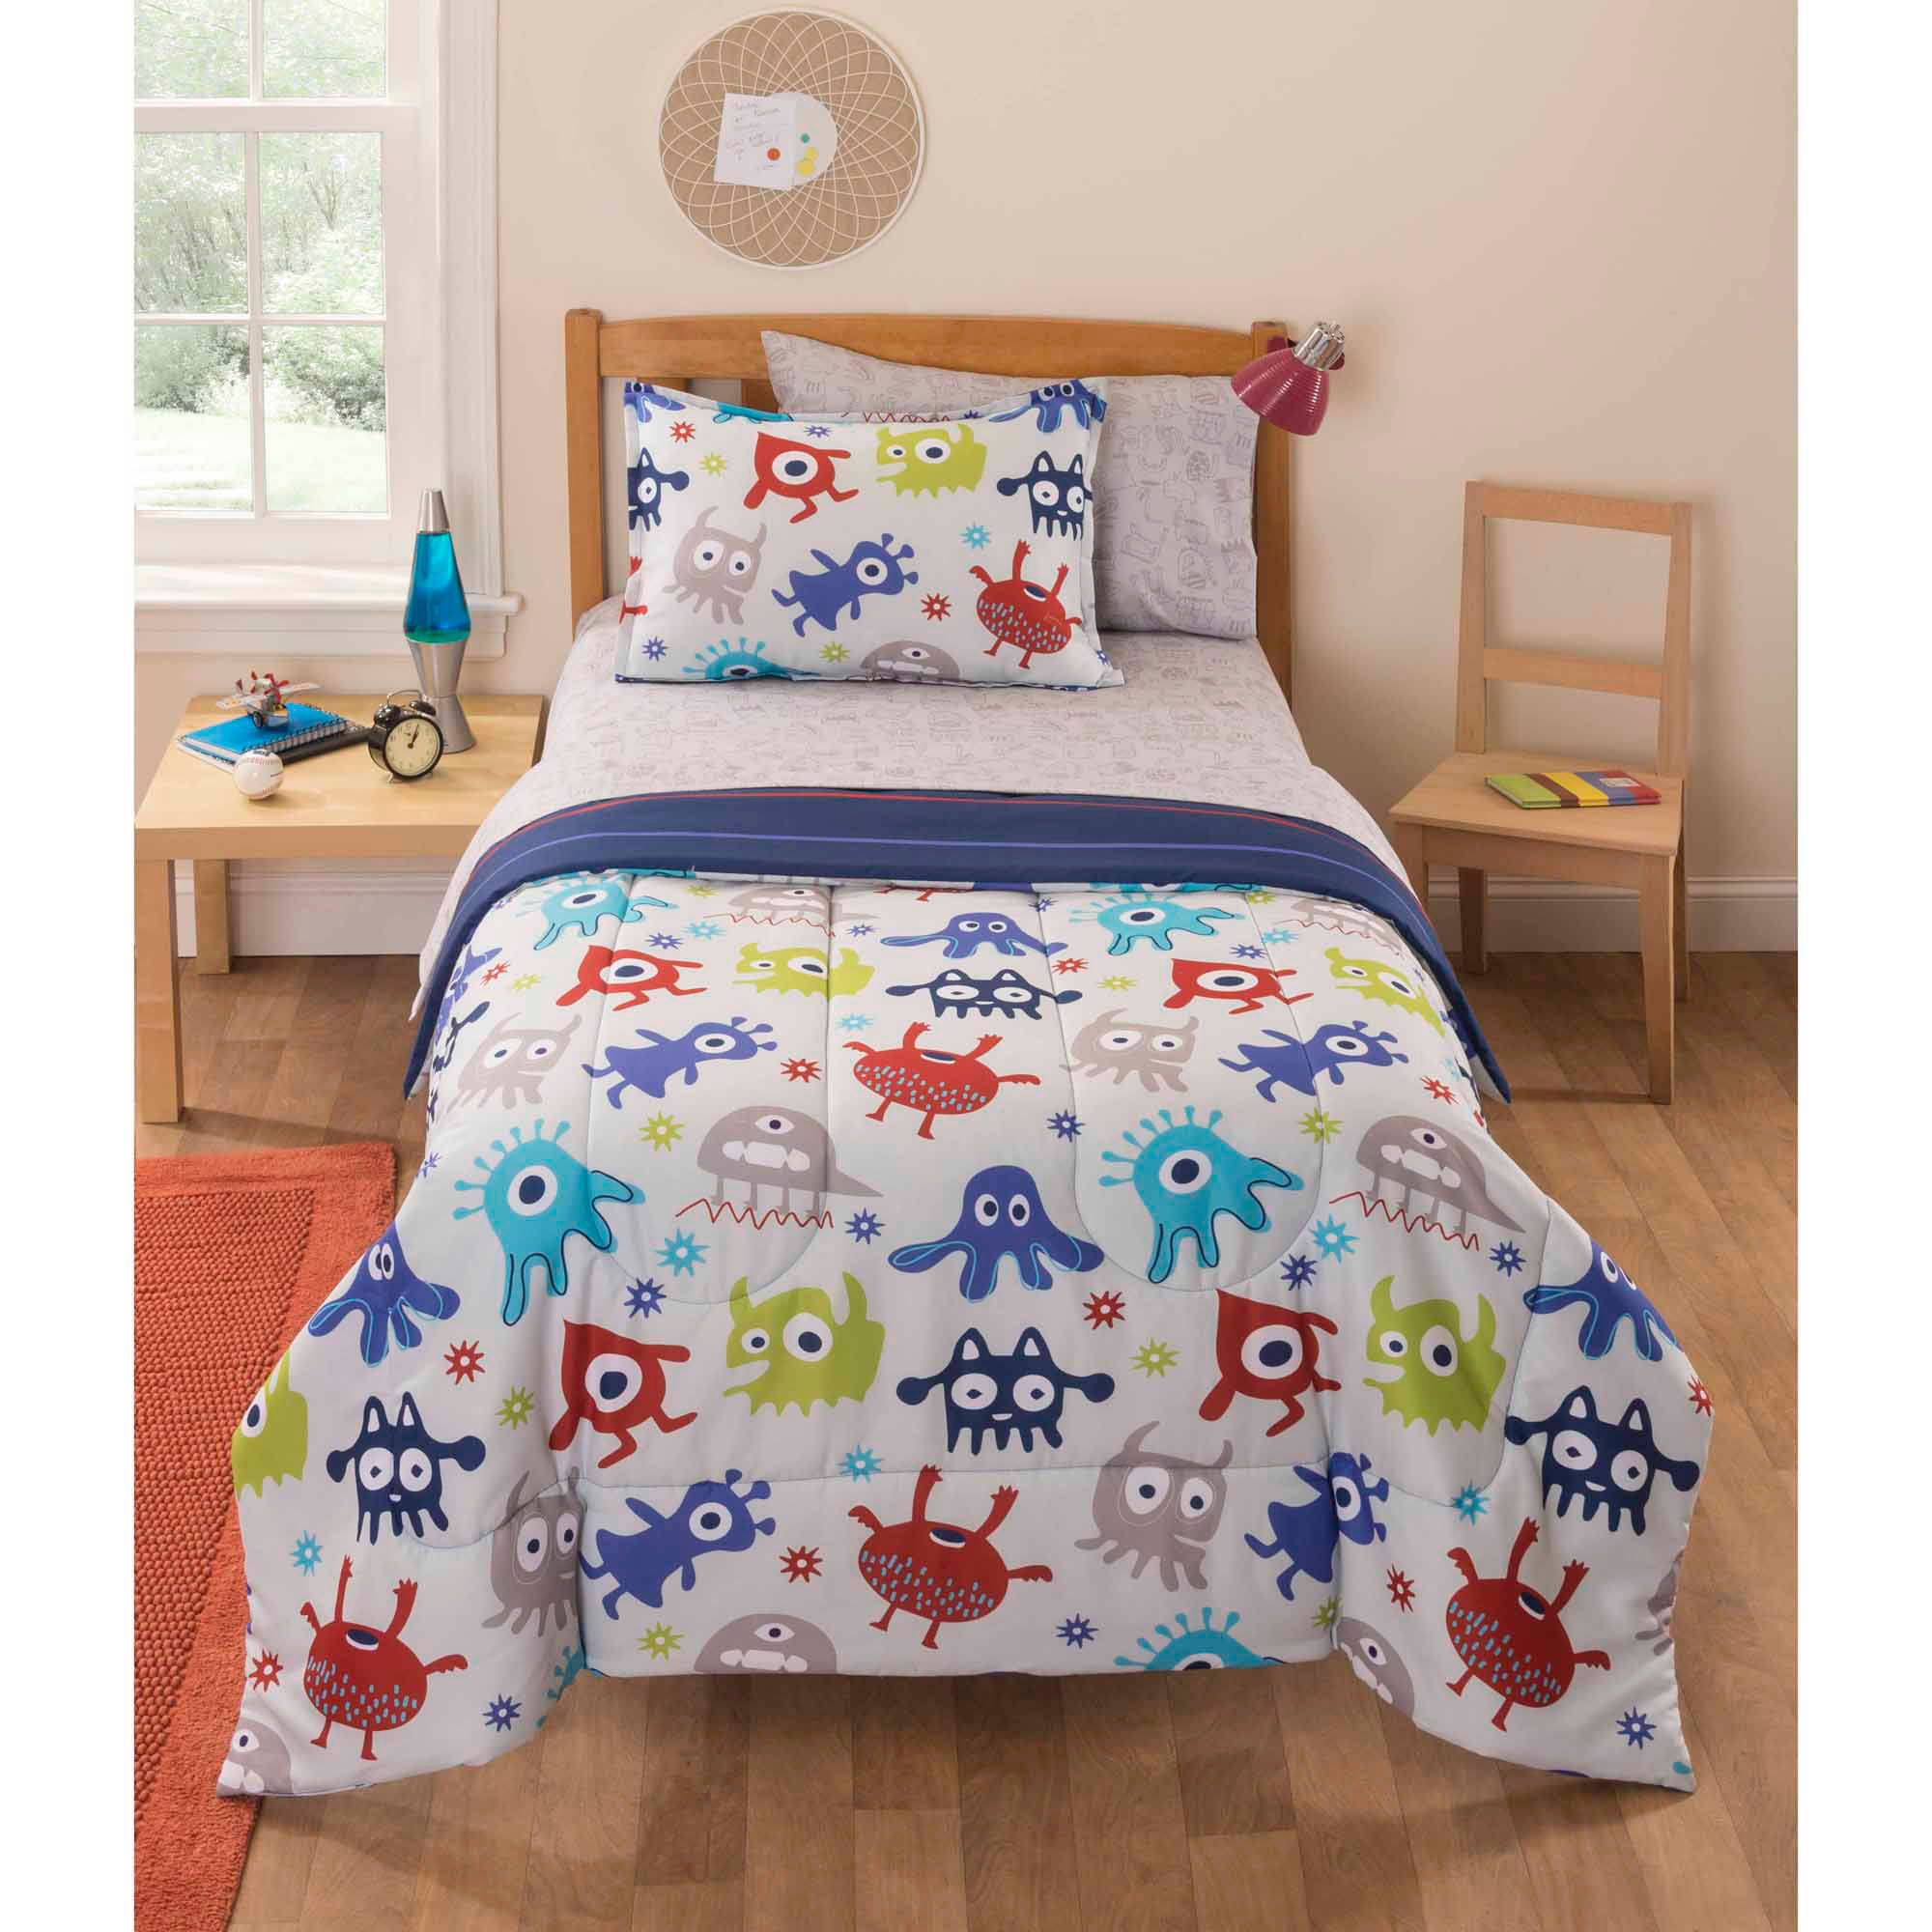 Mainstays Kids Monster Stripe Bedding Bed in a Bag